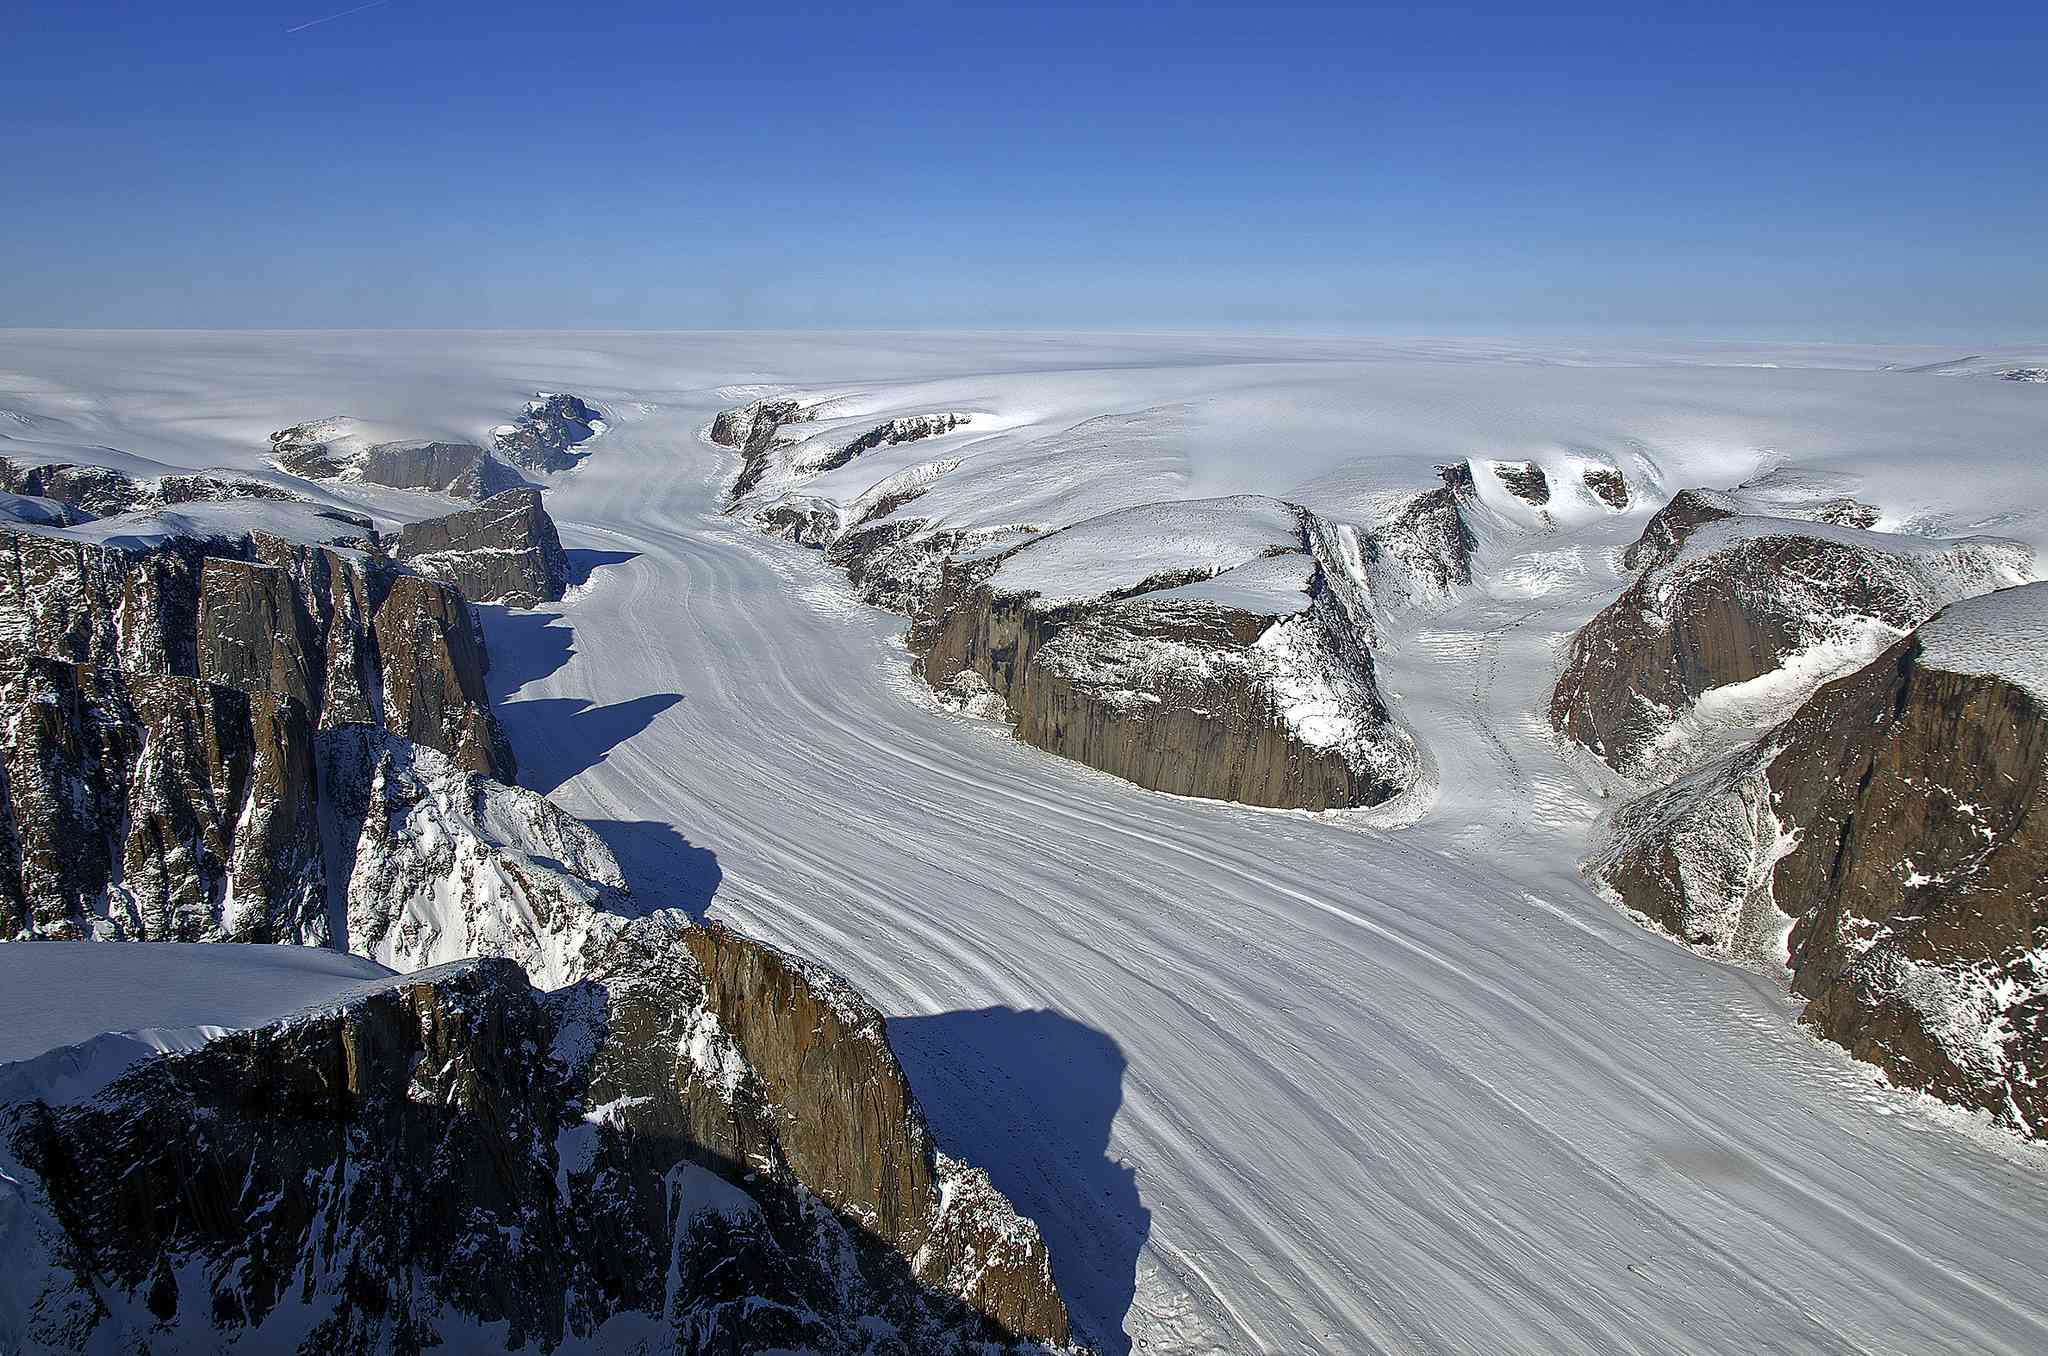 An outlet glacier flows from the Penny Ice Cap on Baffin Island, Nunavut, Canada